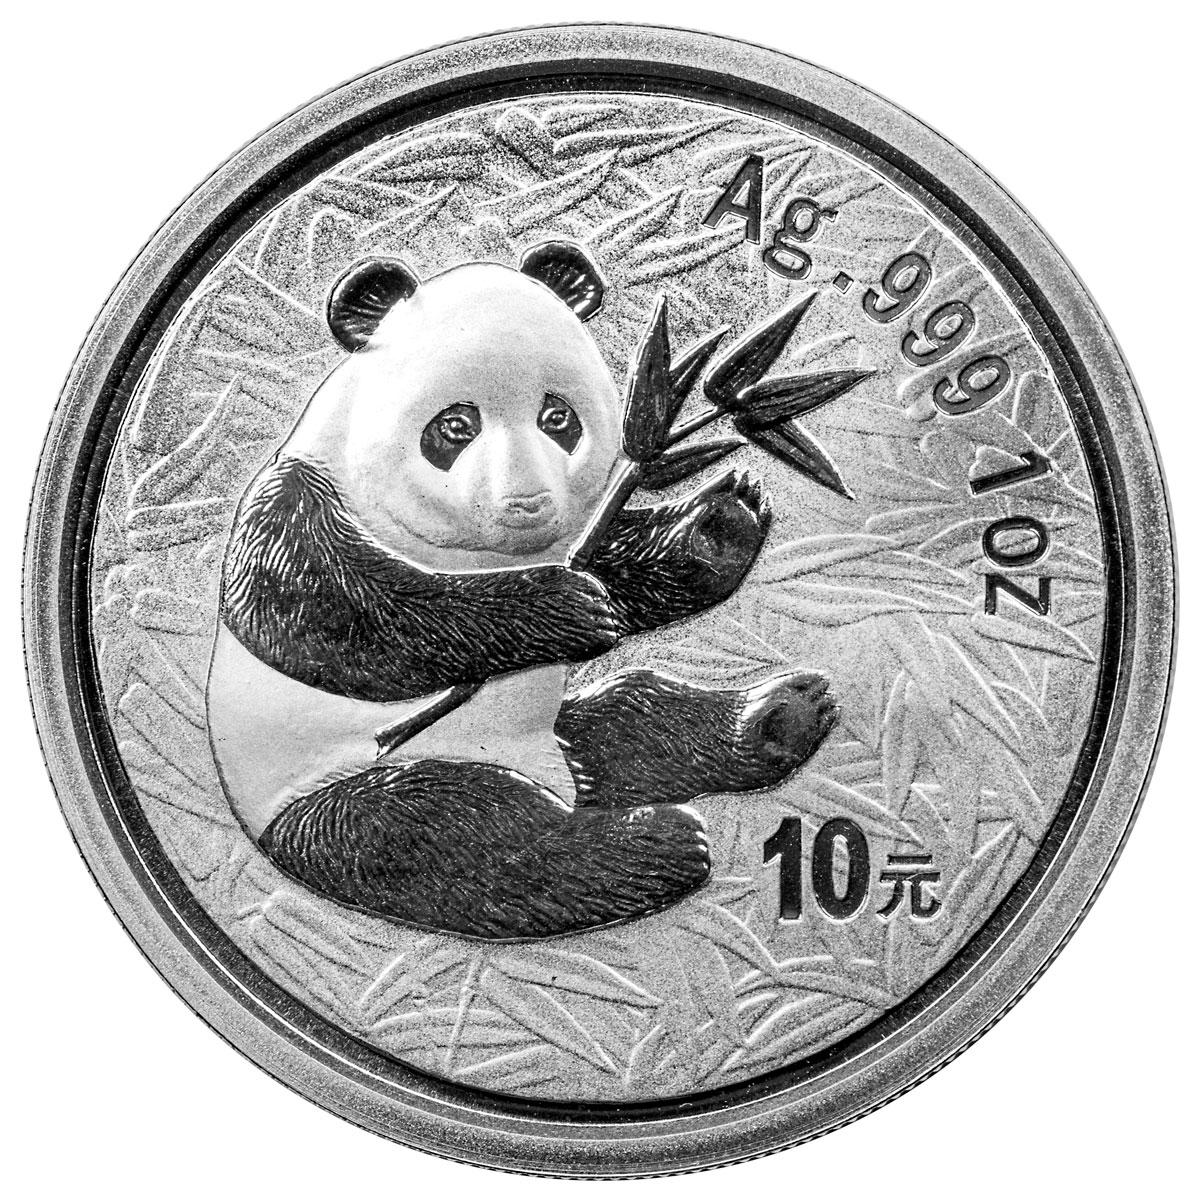 2000 China 1 oz Silver Panda ¥10 Coin GEM BU